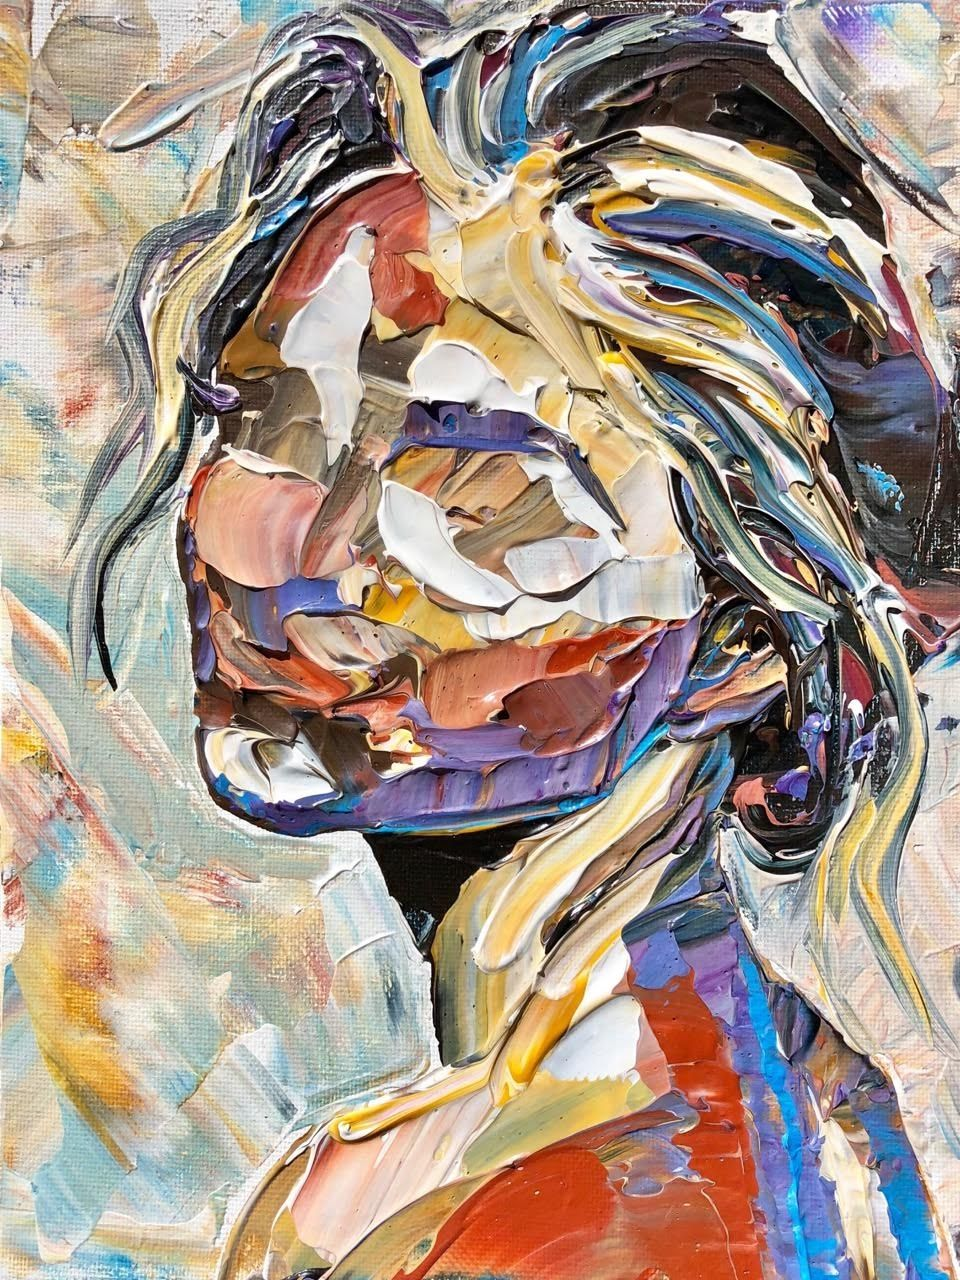 Human Blueprints Palette knife paintings that reveal the